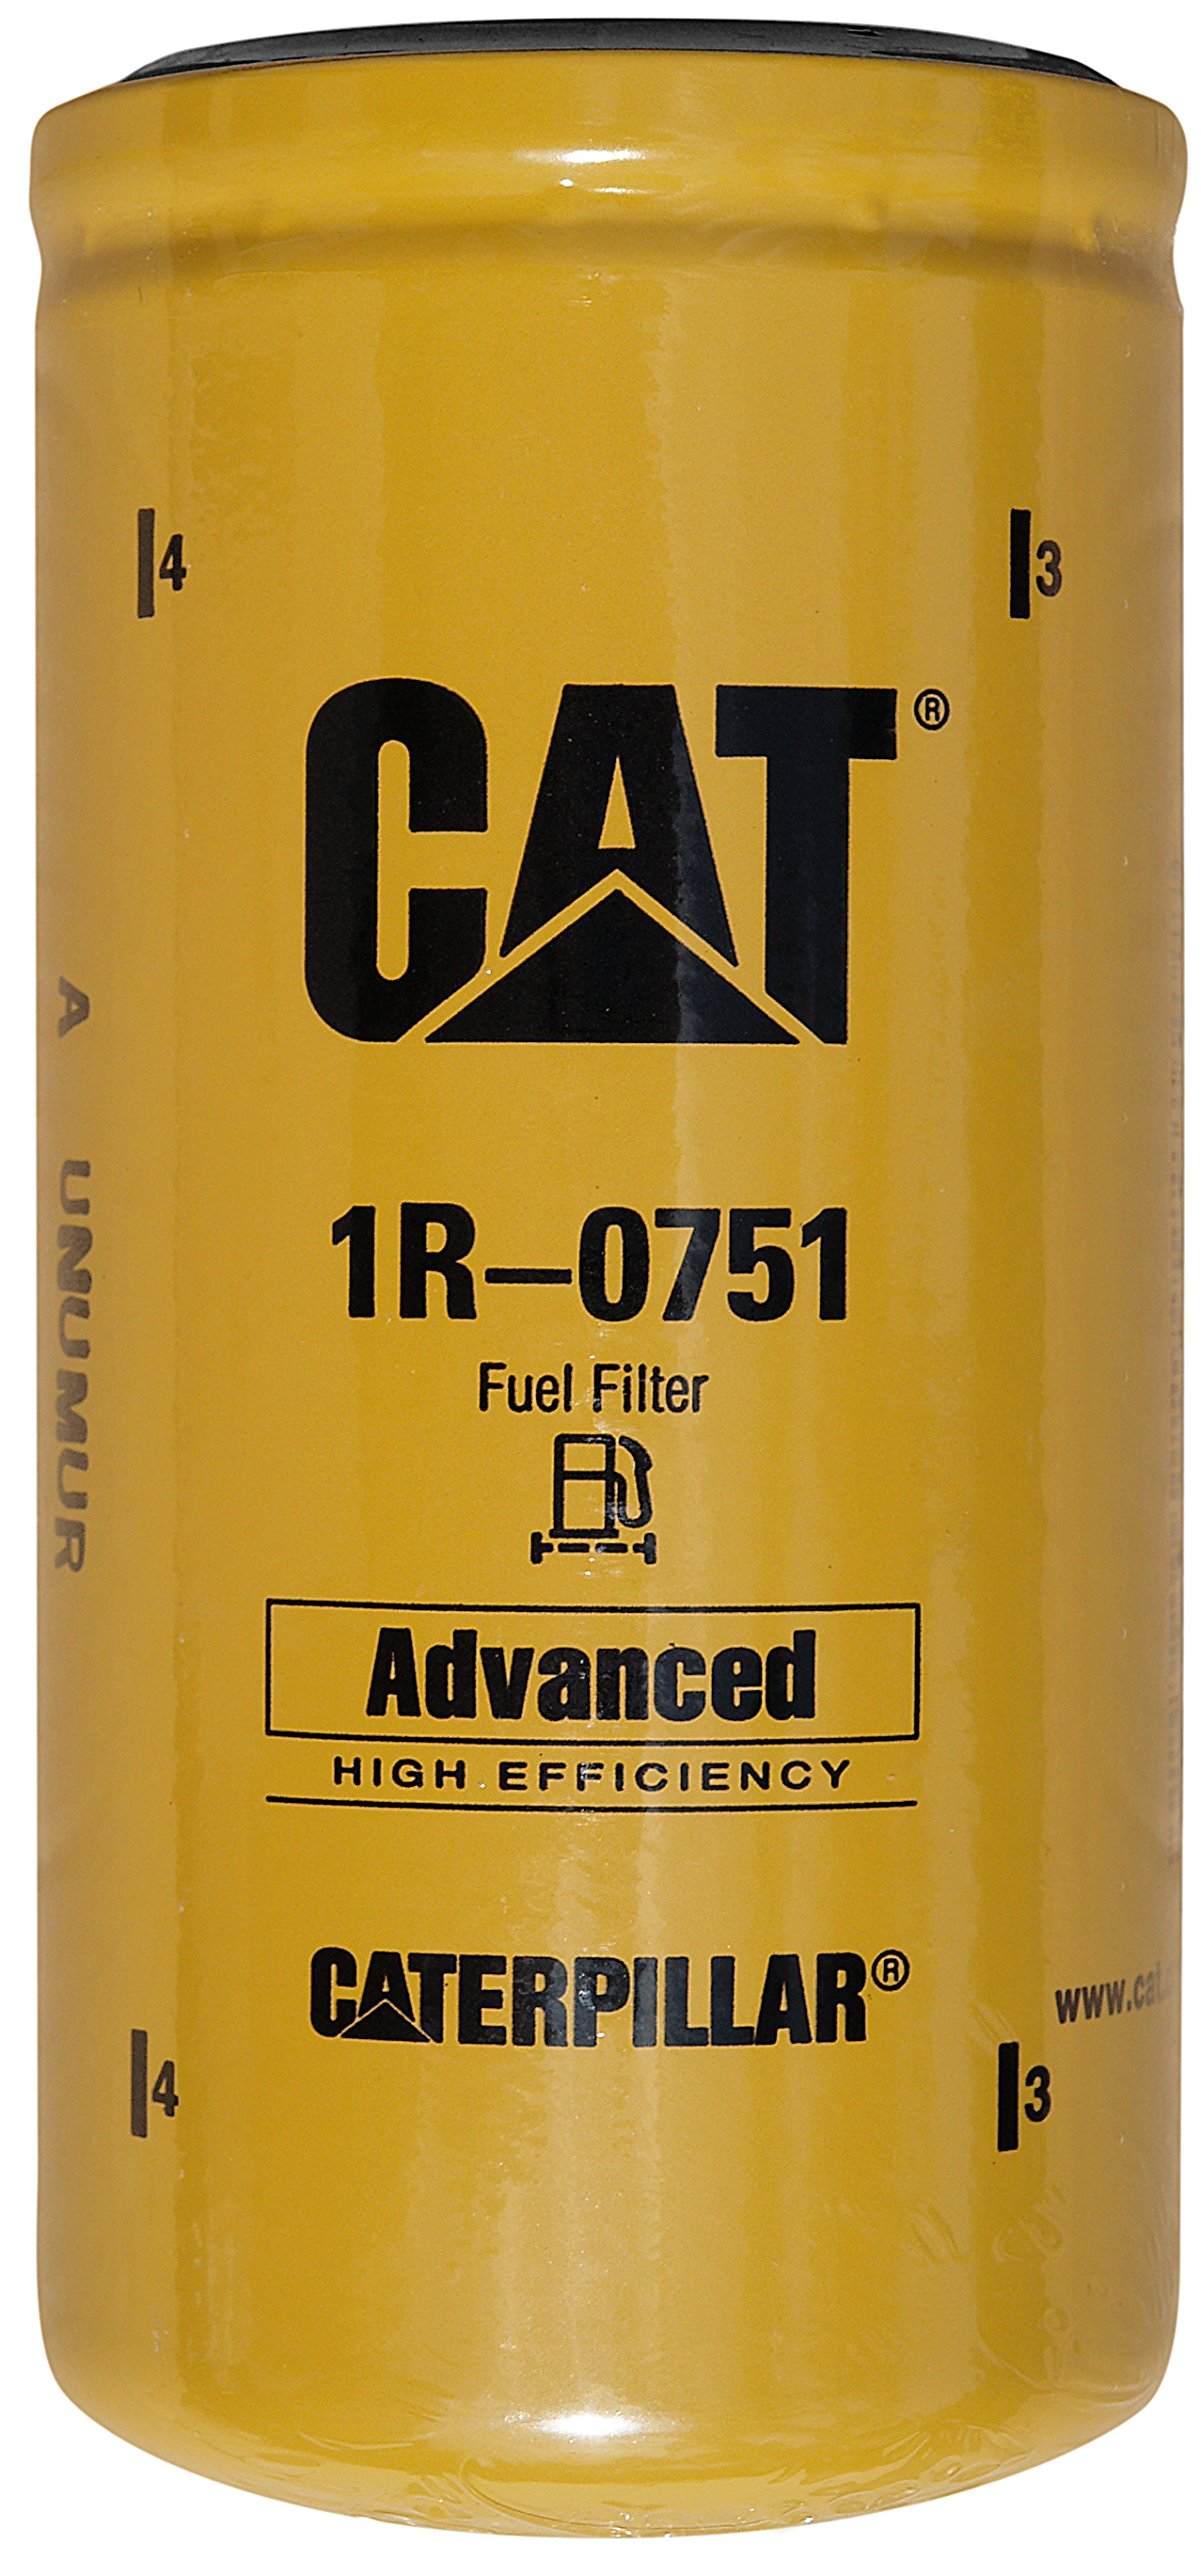 Caterpillar 1R-0751 Advanced High Efficiency Fuel Filter Multipack (Pack of 4)